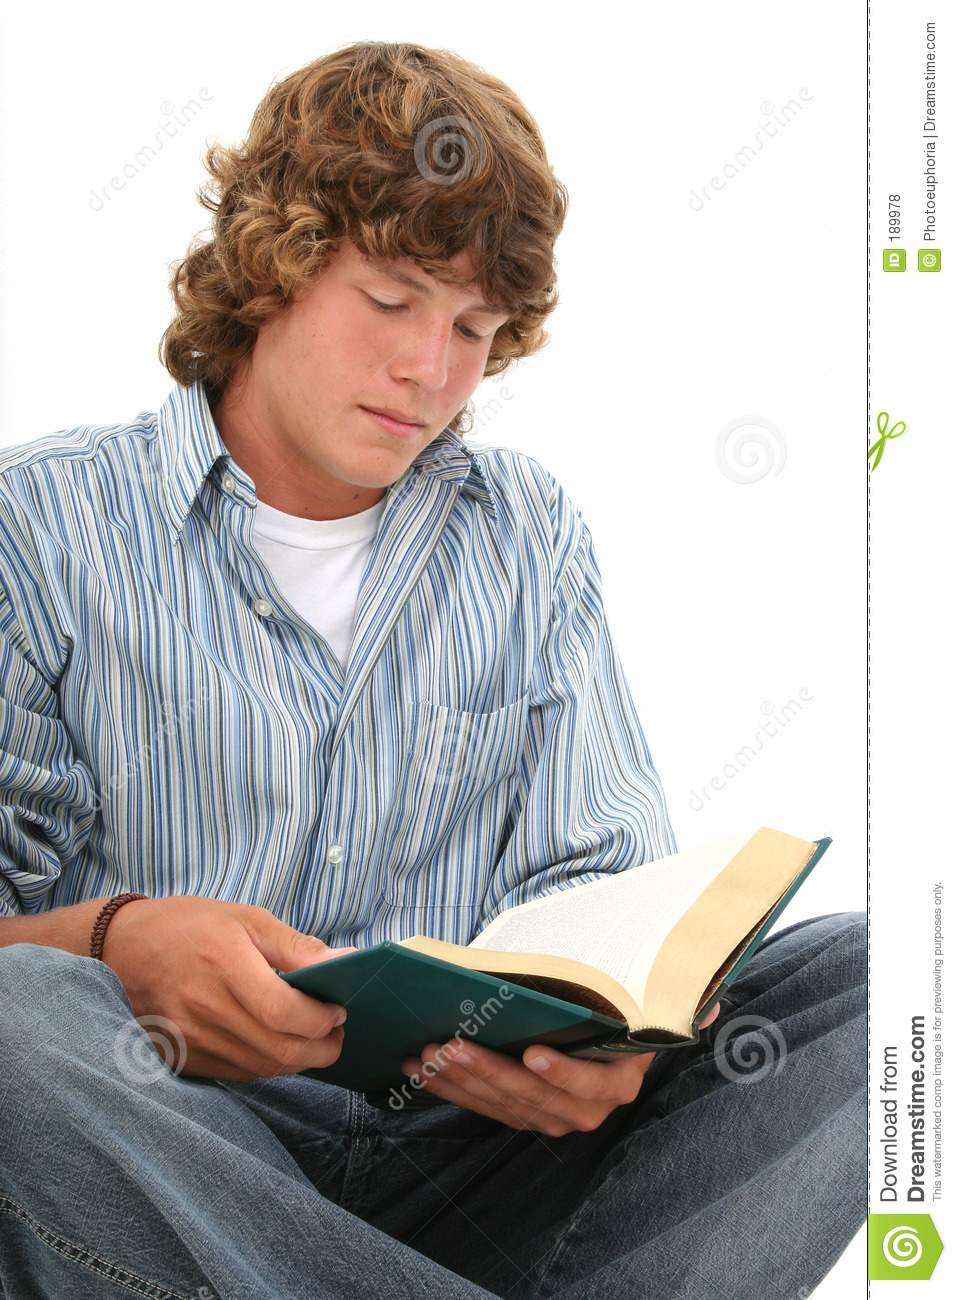 To read in real teens